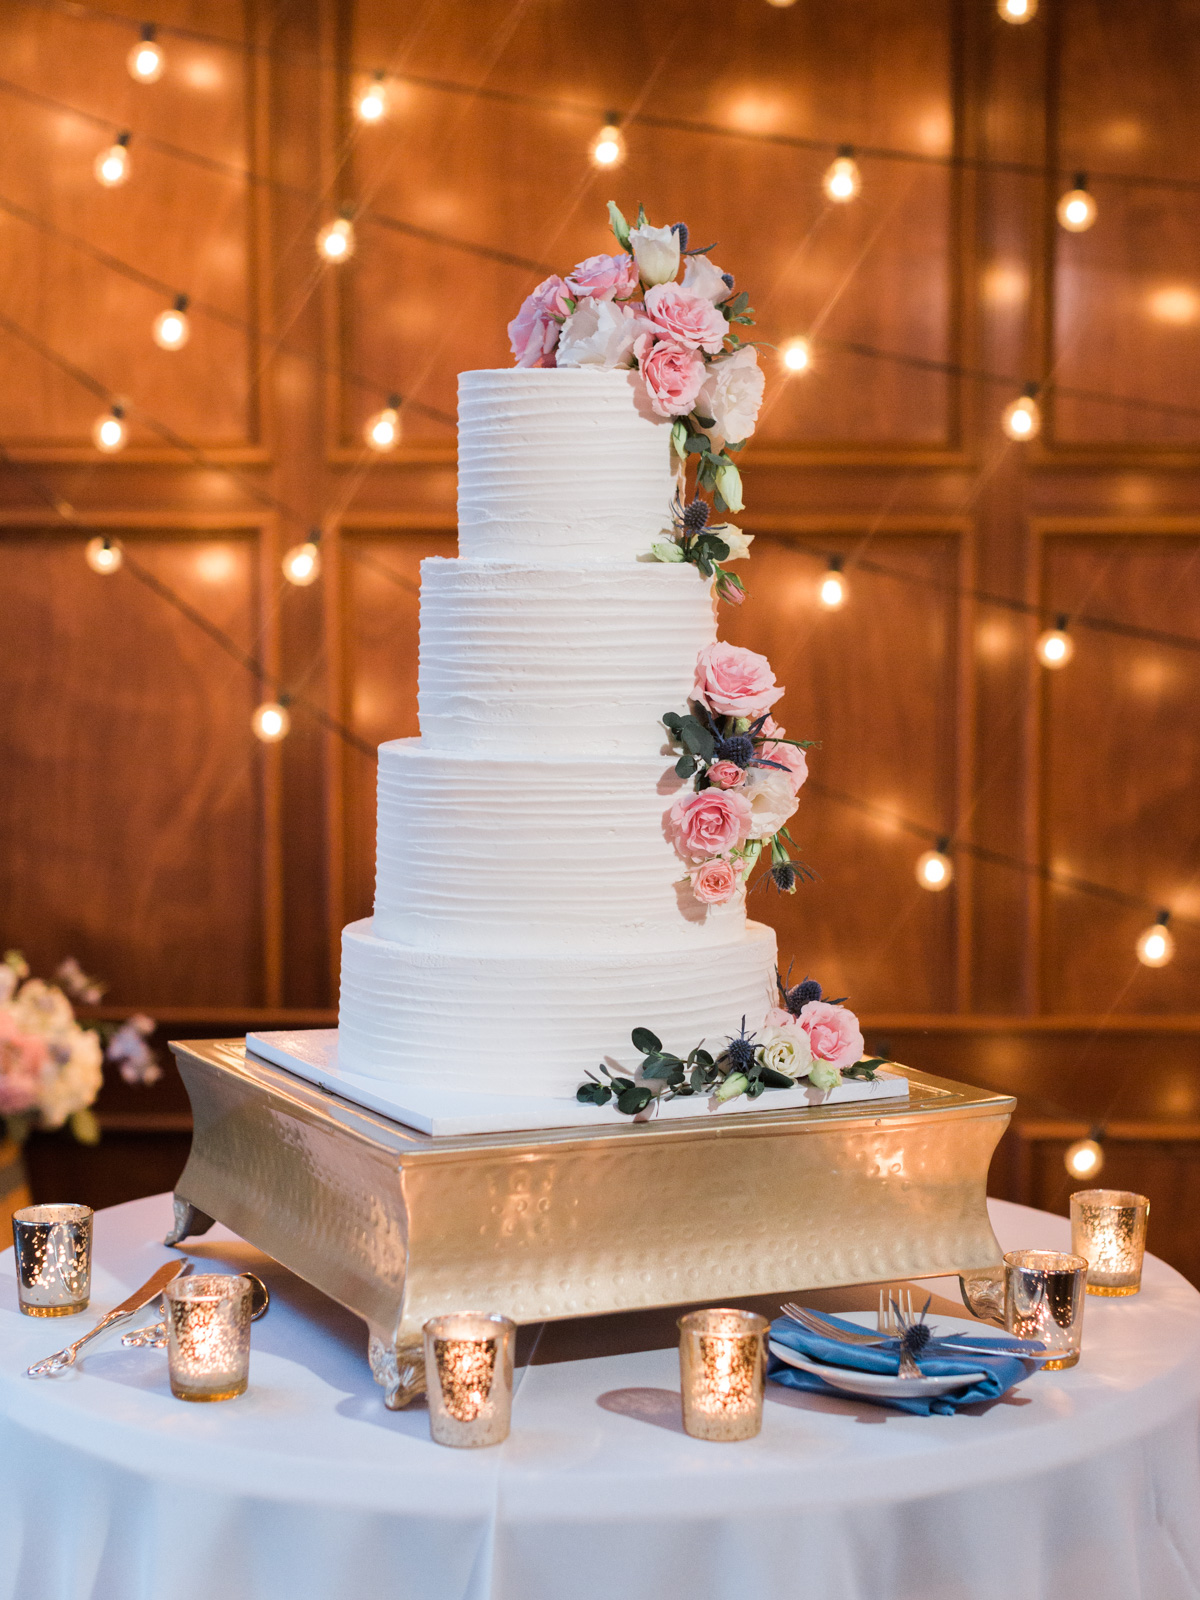 Beautiful wedding cake by Laura Marie's Cakes  Harrison & Jocelyne's gorgeous Temecula wedding day at Wiens Family Cellars captured by Temecula wedding photographers Betsy & John